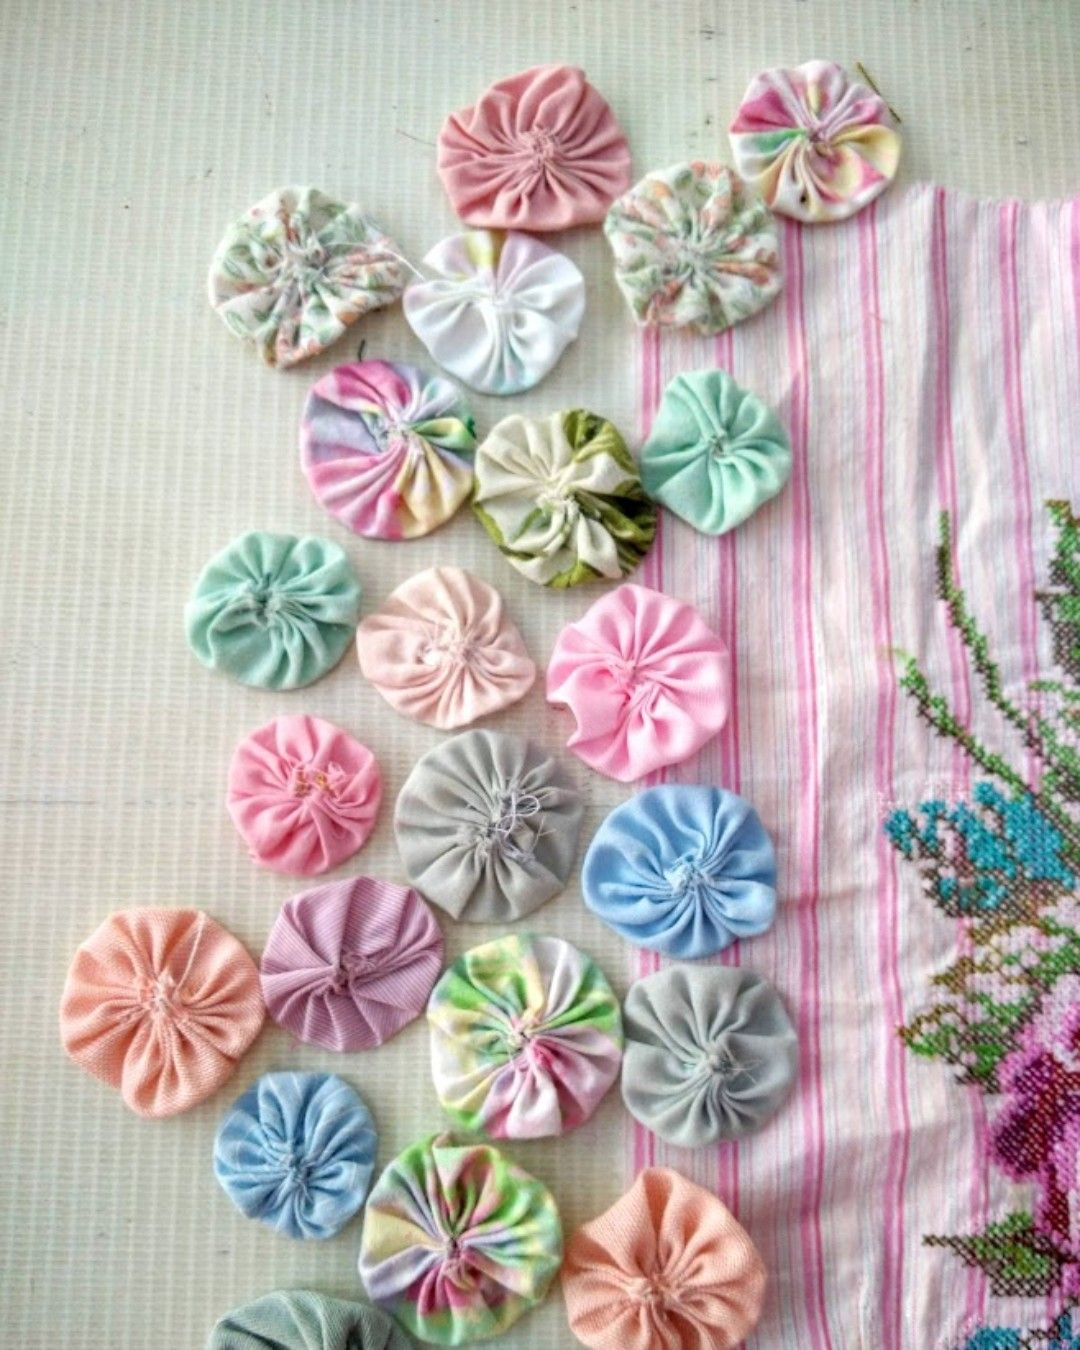 Crazy Quilting Scrapbooking Fabric Jewelry Inspiration Craft Kit  in Copper Colors for Fabric Collage